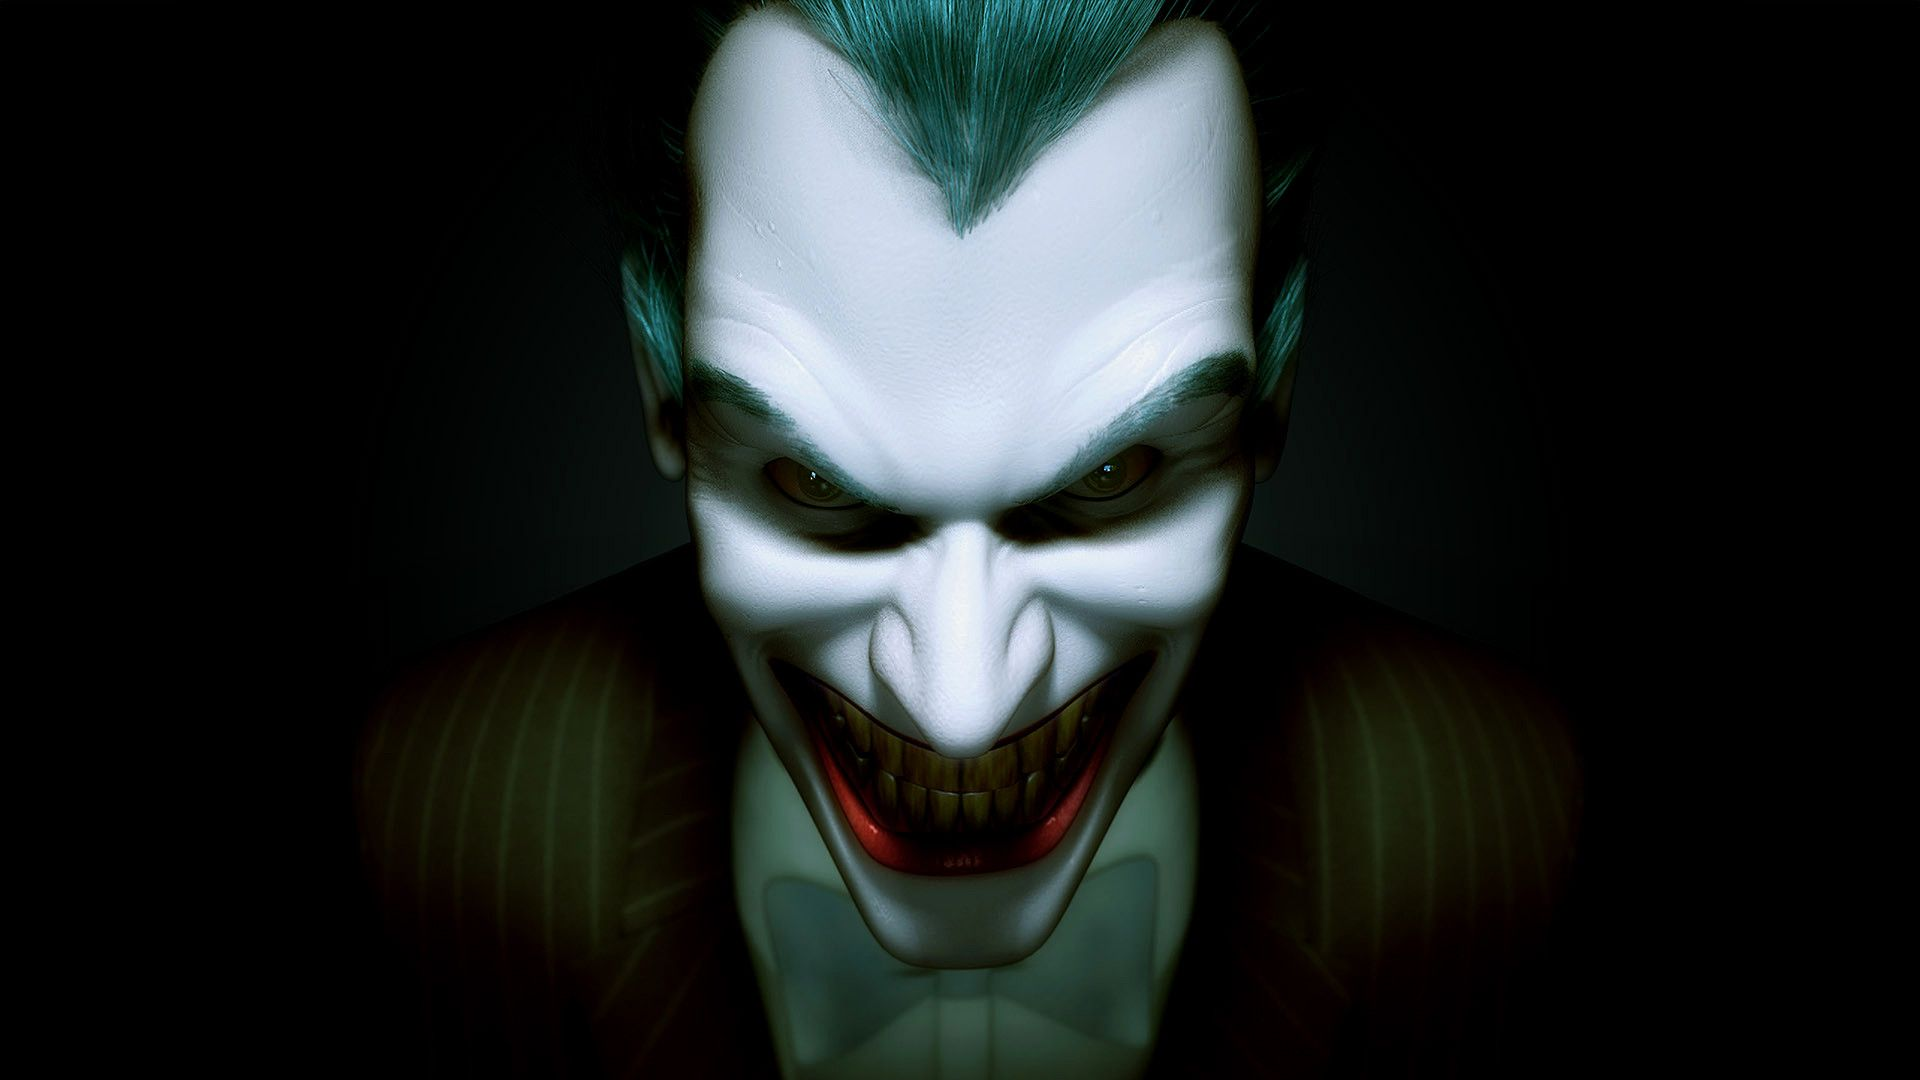 1920x1080 Joker Wallpaper 1920x1080 1 Hebusorg High